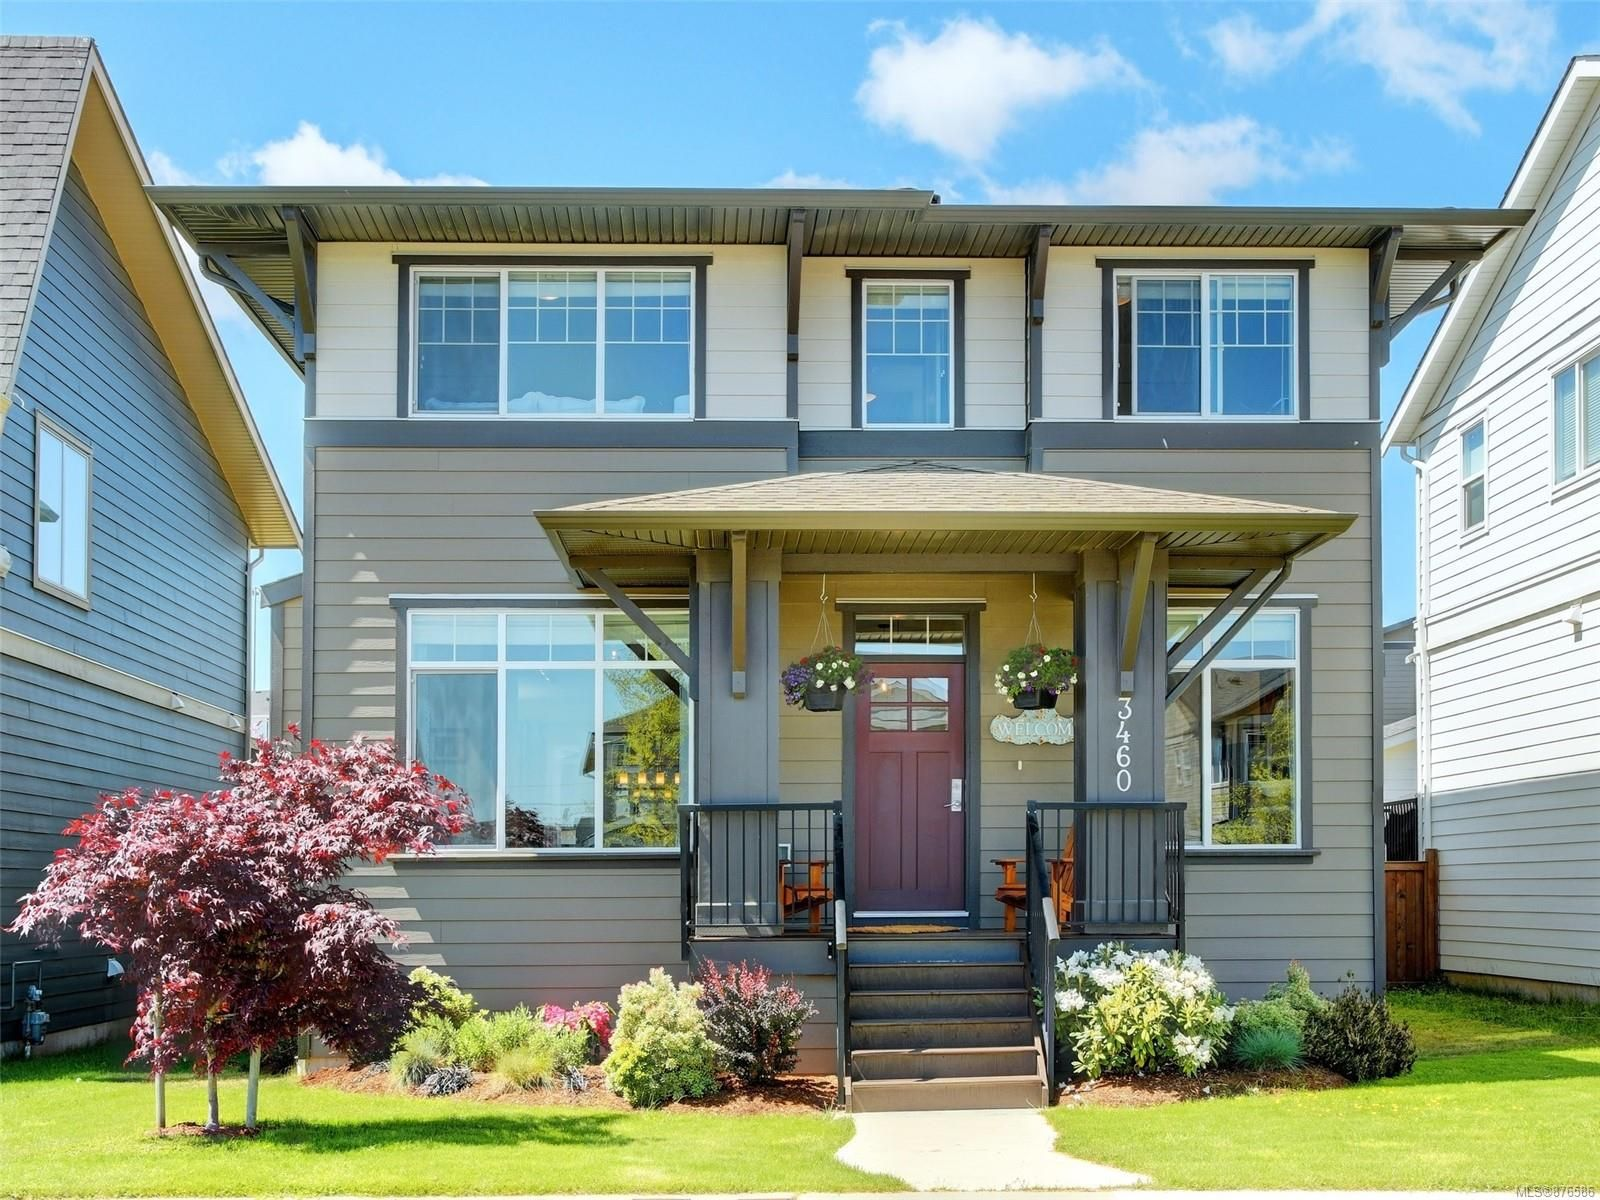 Main Photo: 3460 SPARROWHAWK Ave in : Co Royal Bay House for sale (Colwood)  : MLS®# 876586